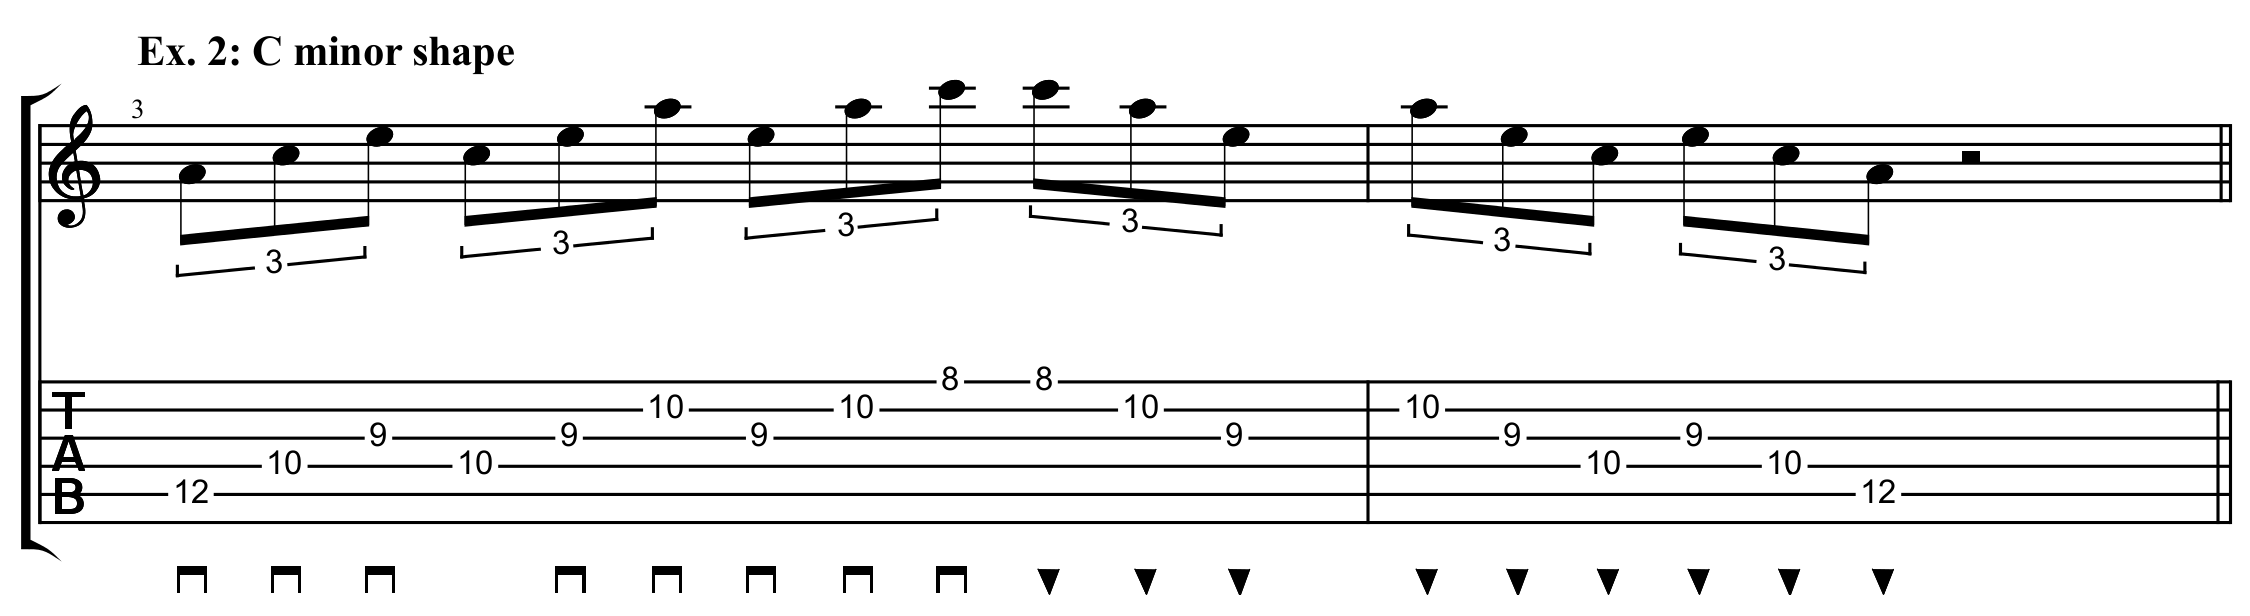 C minor shaped arpeggio exercise with sweep picking